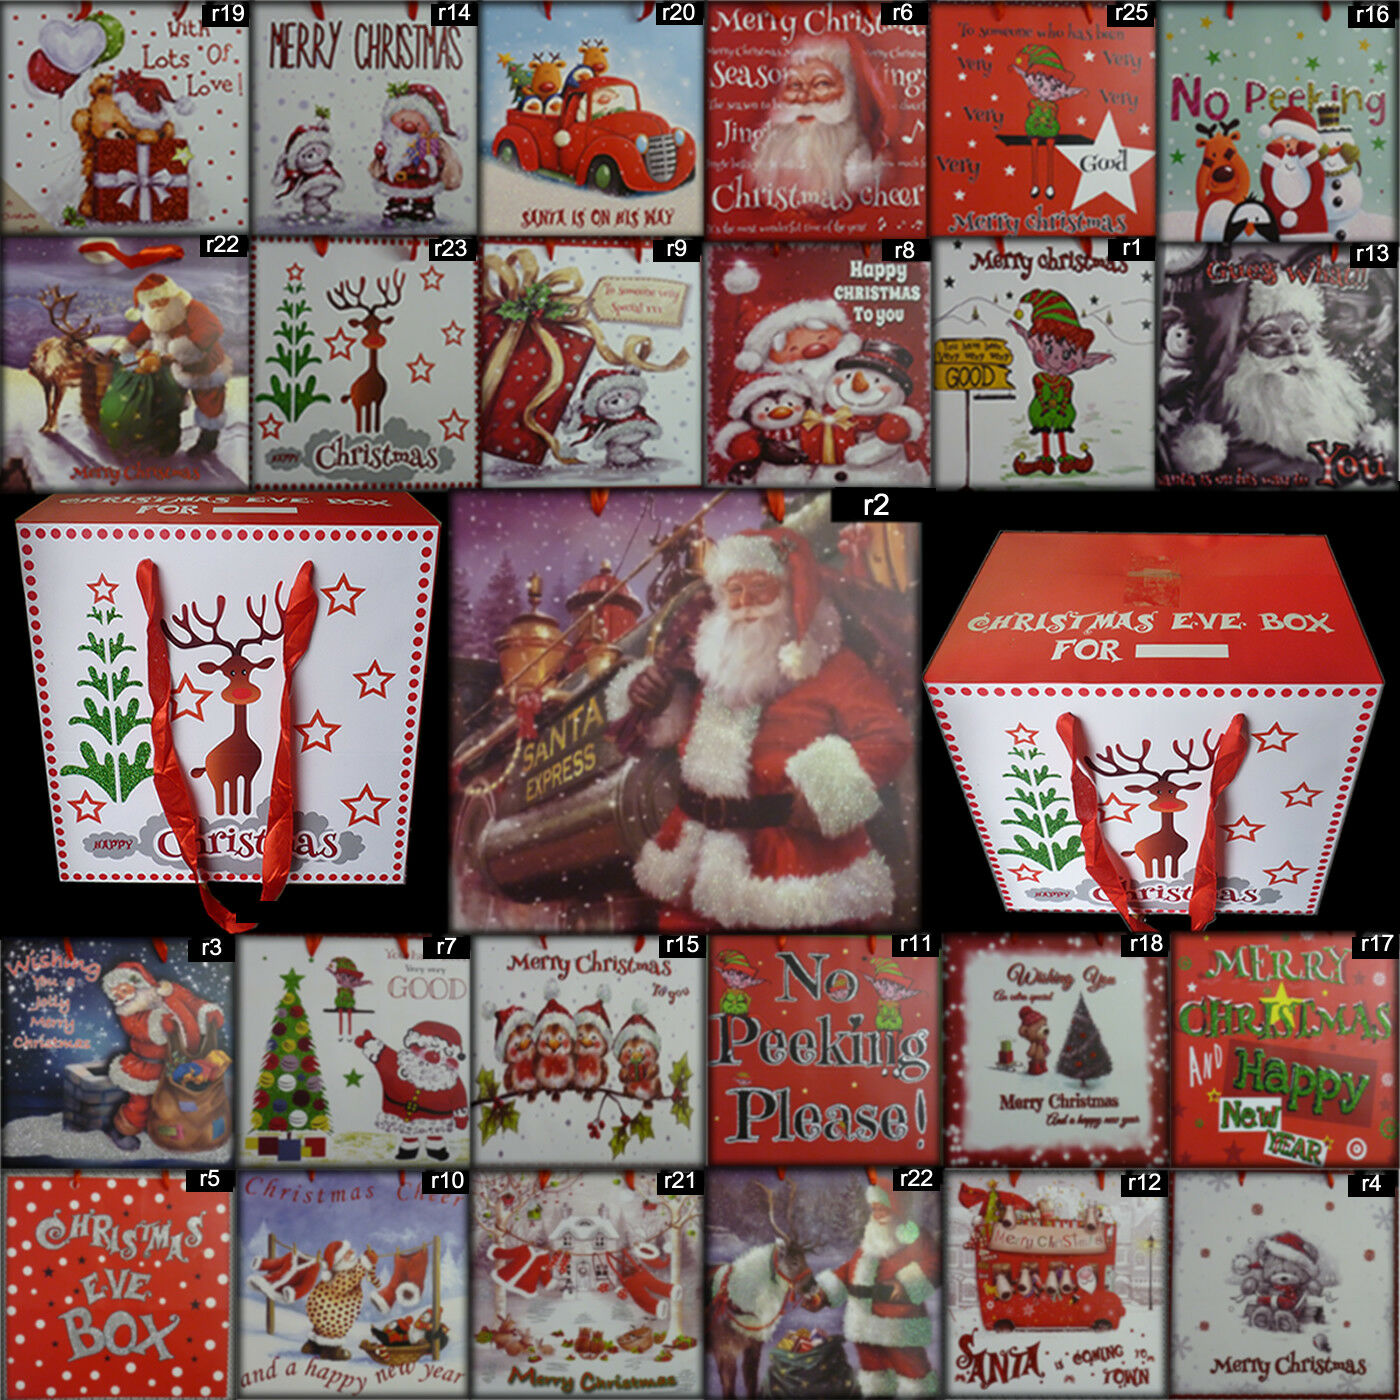 new christmas eve box xmas gift wrapping festive bag boxes ribbon handles 1 of 3free shipping see more